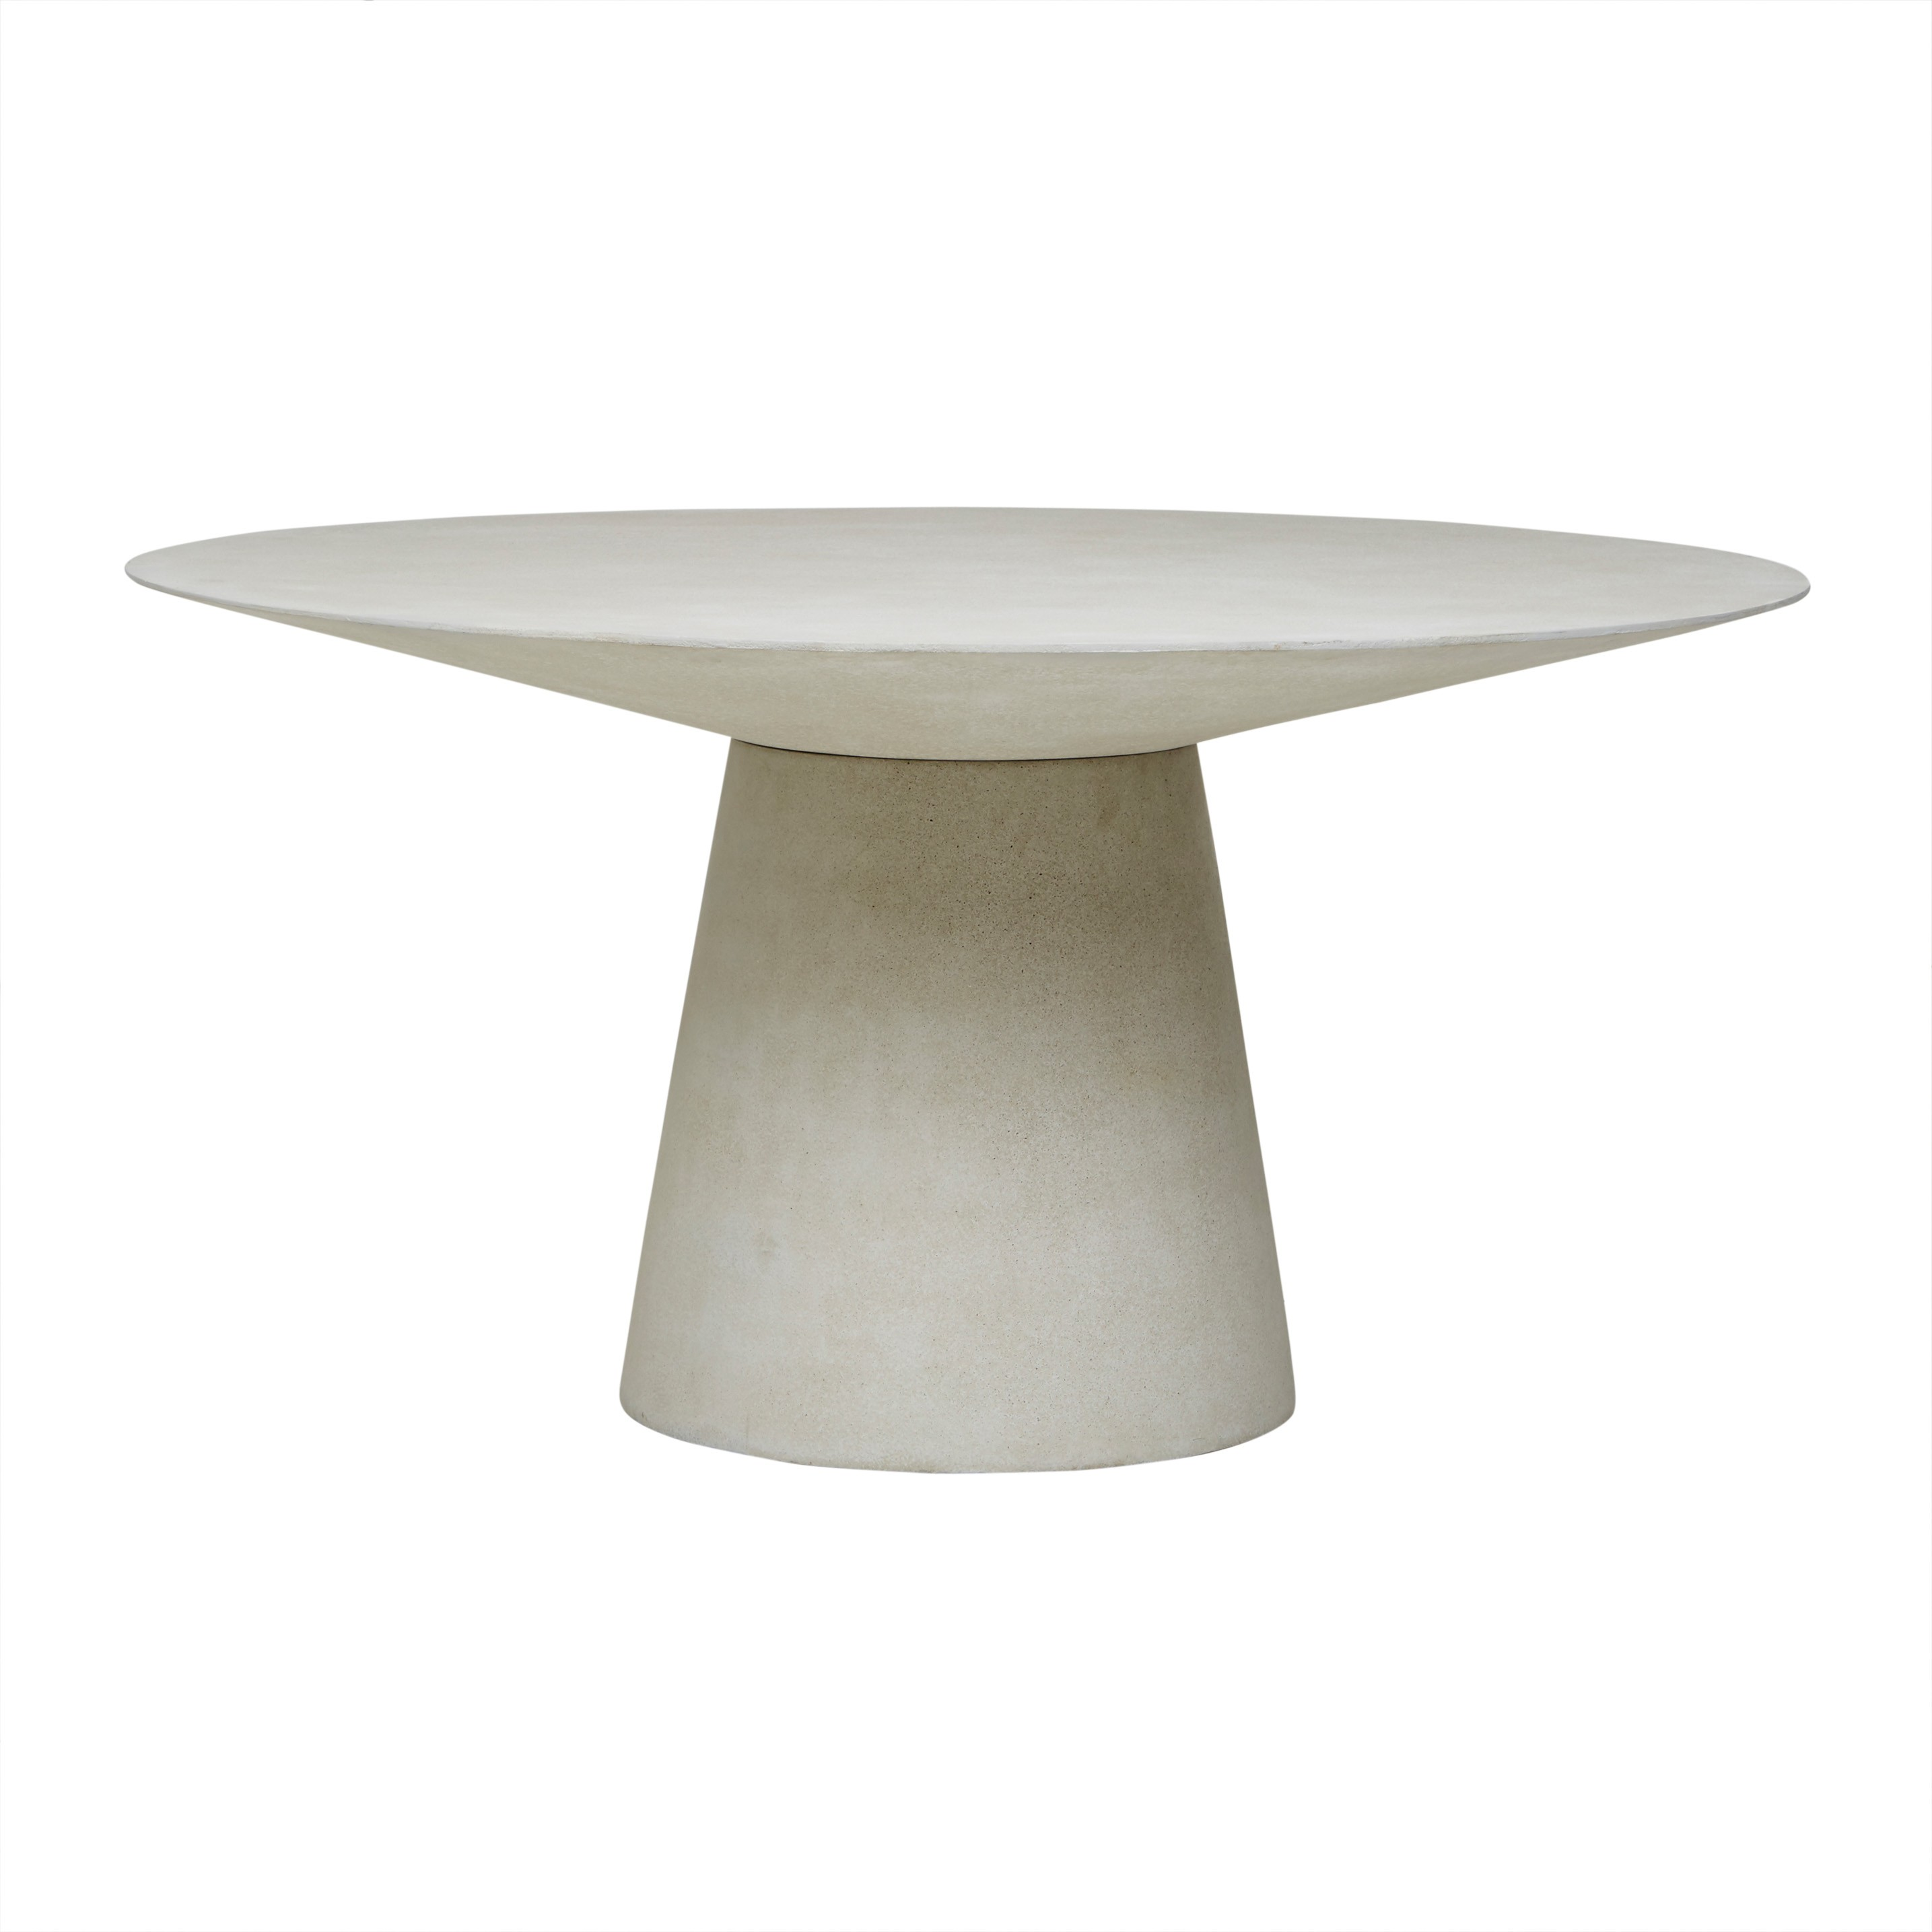 Furniture Hero-Images Dining-Tables livorno-round-00